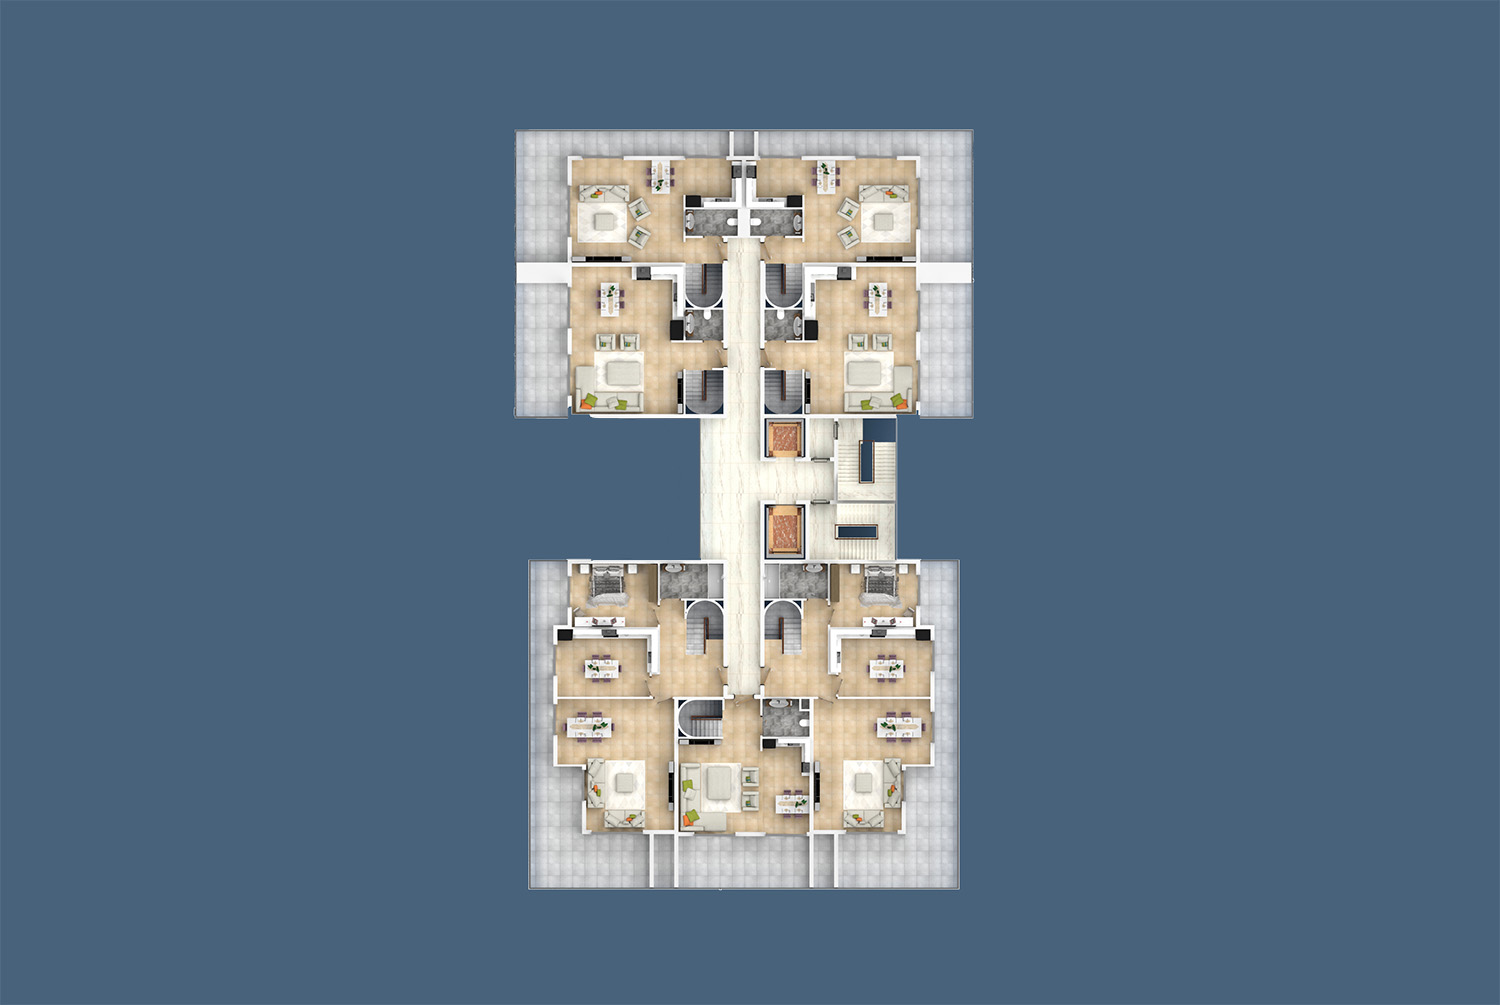 Floor plans of apartments 12 floor «A» Yekta Kingdom Trade Center